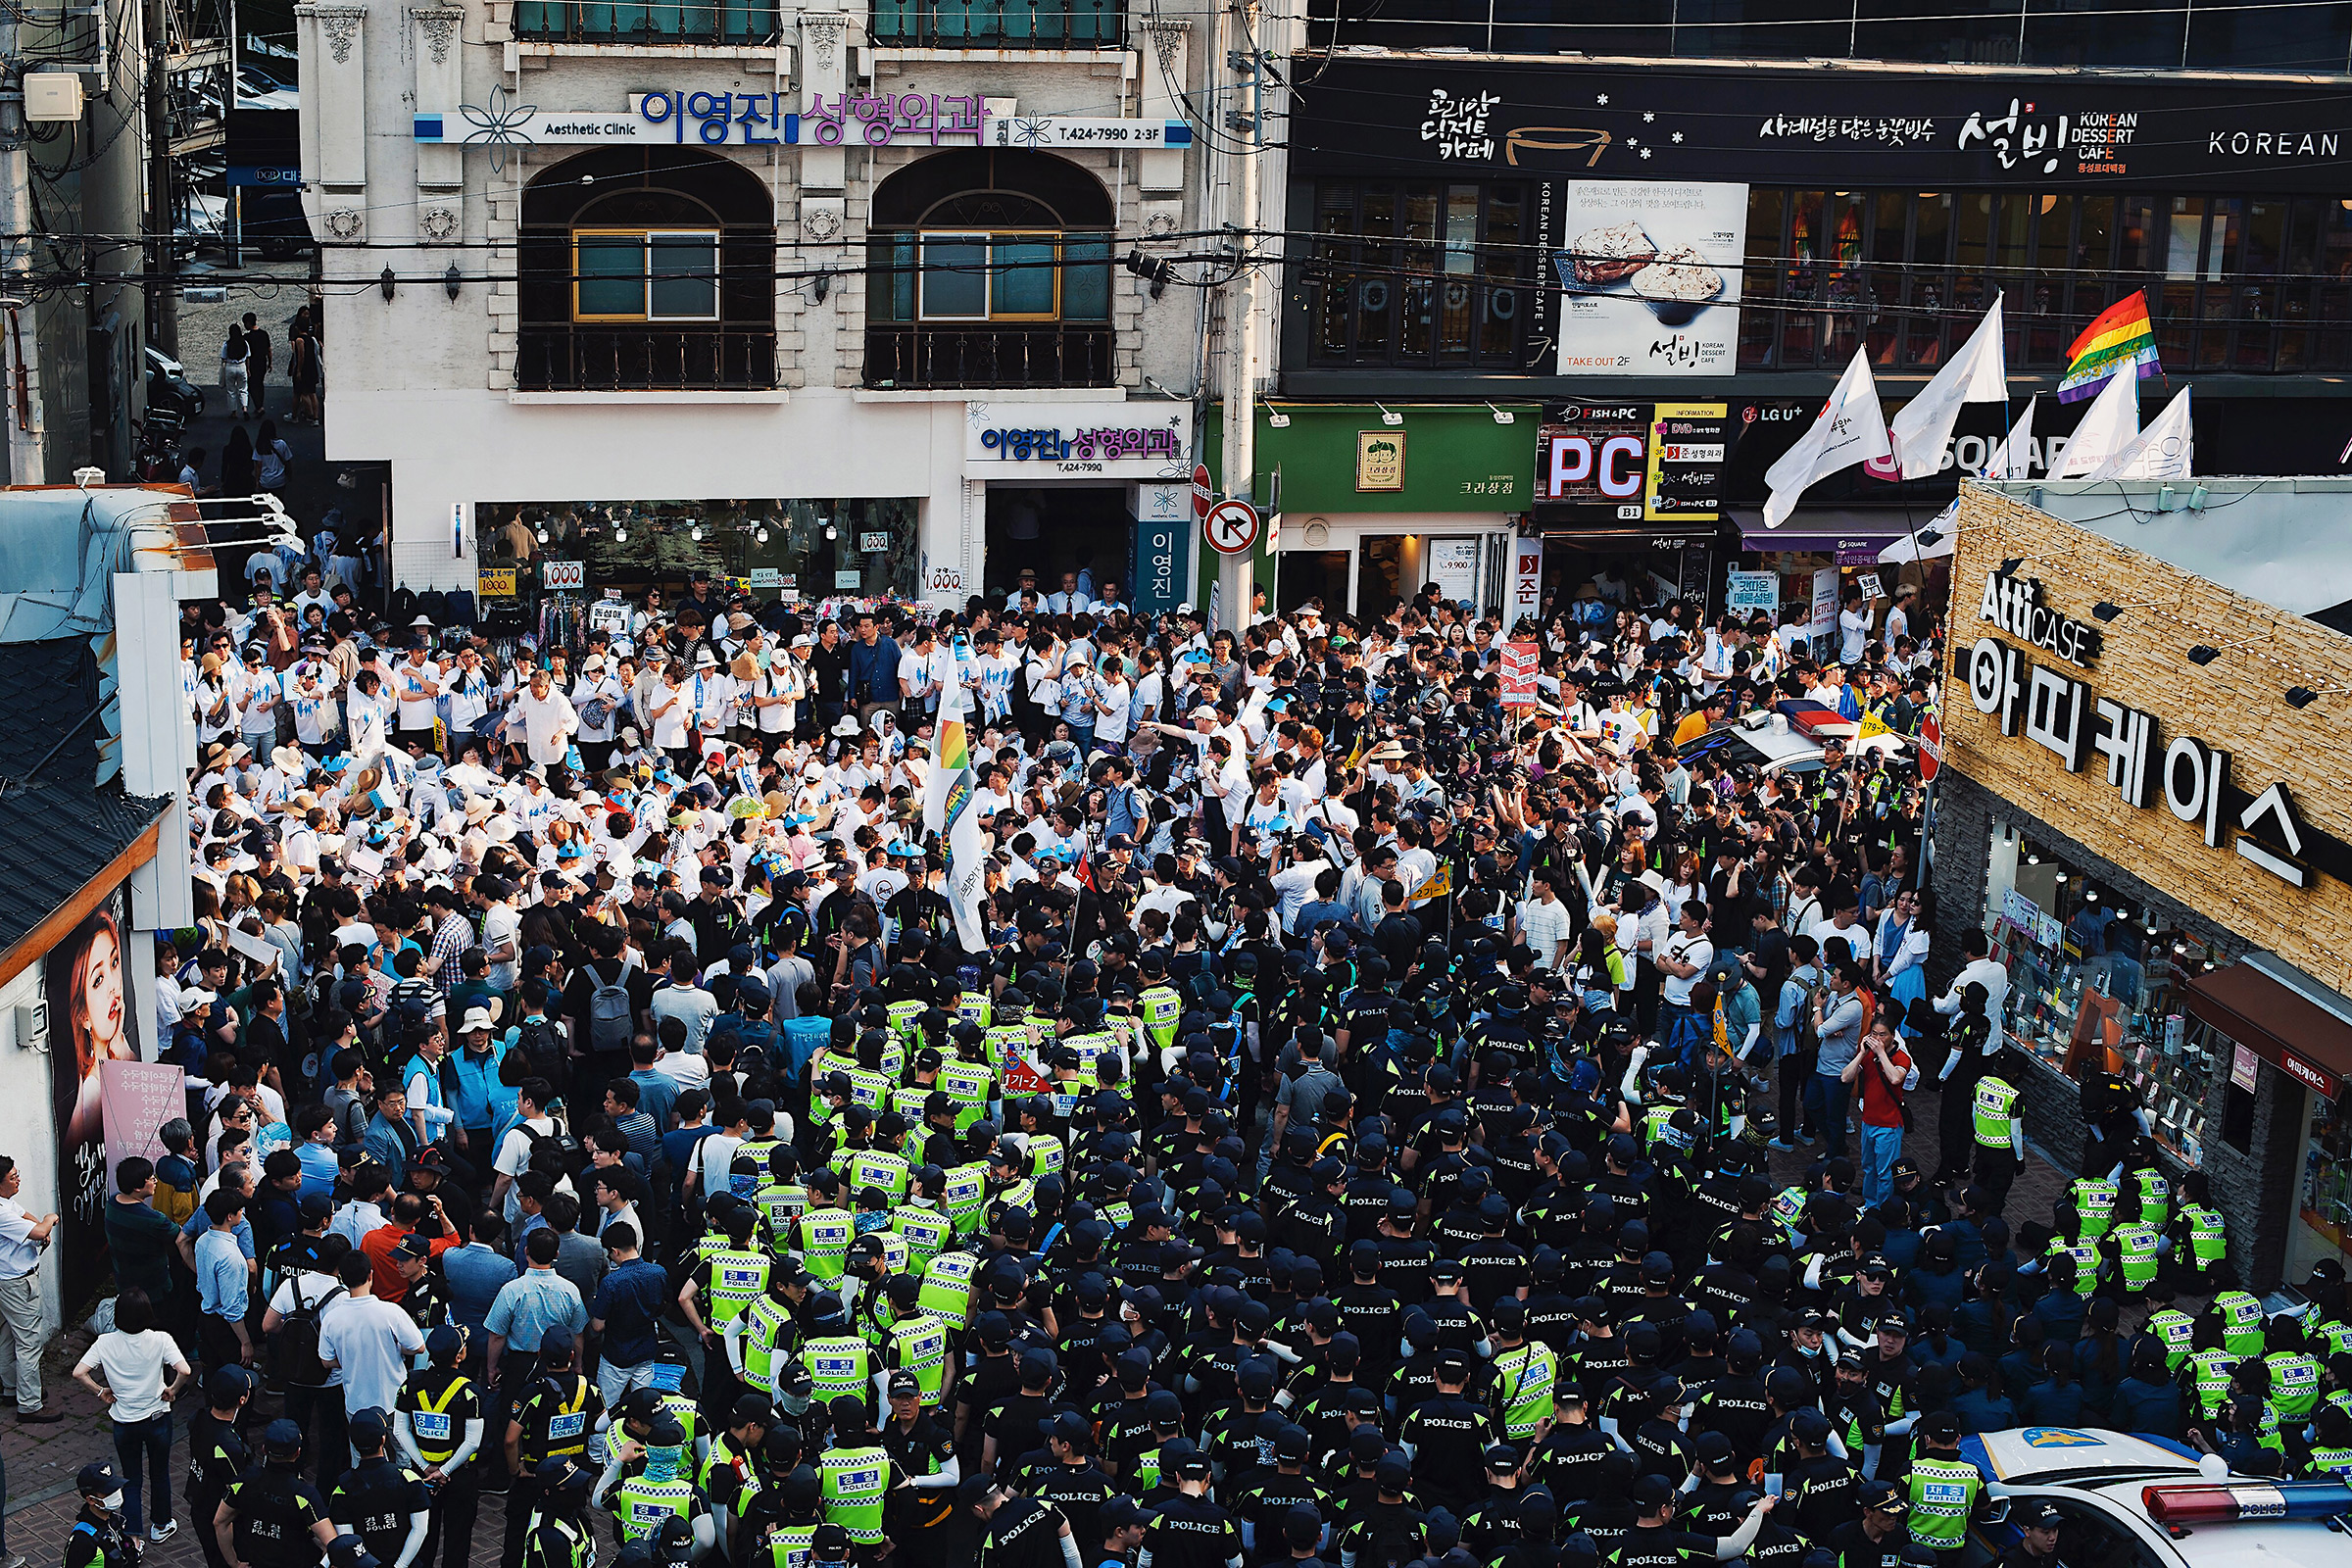 Anti-LGBTQ demonstrators (in white) at Daegu Queer Culture Festival, blocking the LGBTQ parade in June 2018. Over 500 Christianity-affiliated demonstrators sat on the roads near Dongsungro Plaza and sang the Korean national anthem, refusing to make way until the parade was canceled.